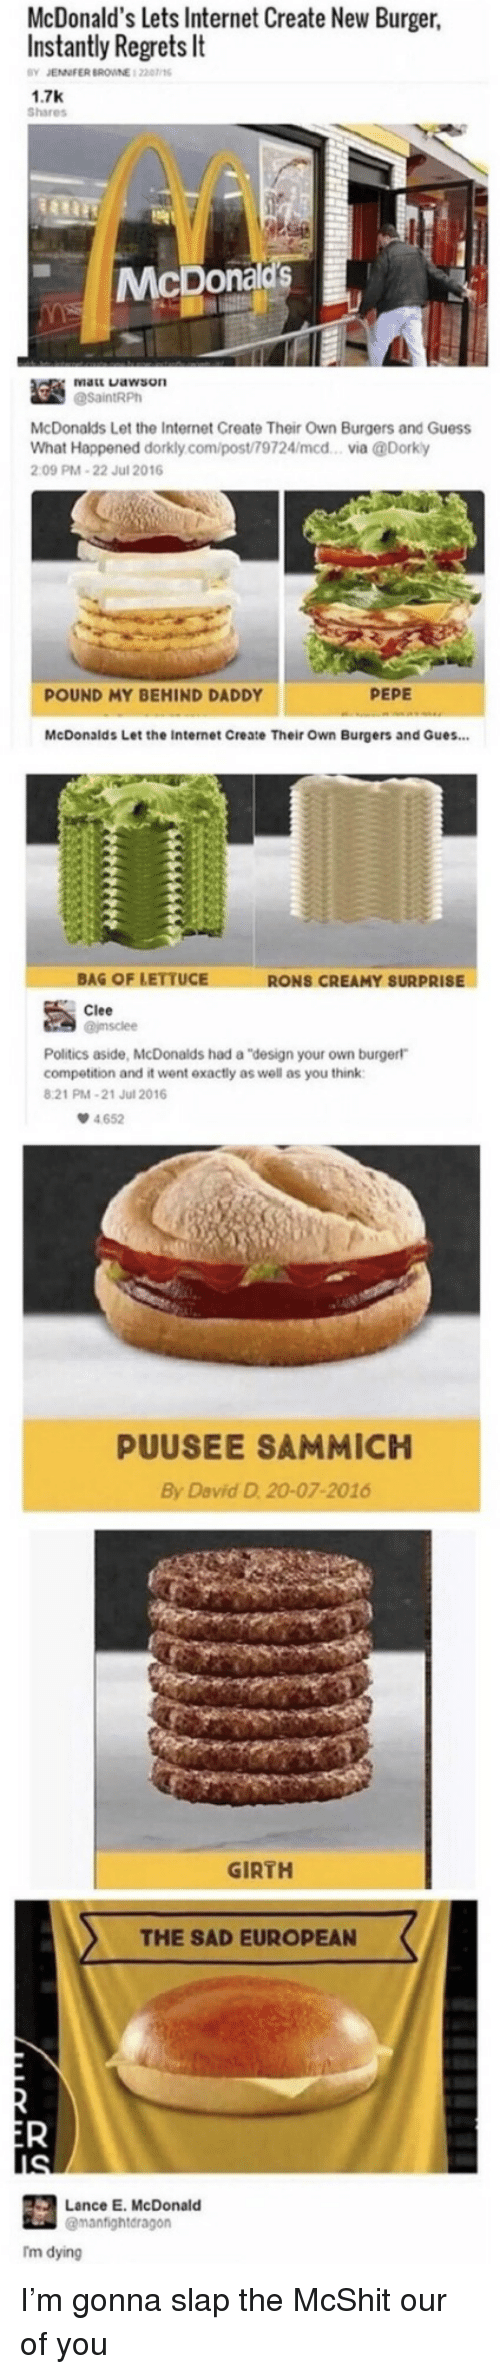 "sammich: McDonald's lets Internet Create New Burger,  Instantly Regrets It  BY JENNFER BROWNE 1 22016  1.7K  Shares  McDonal  McDonalds Let the Internet Create Their Own Burgers and Guess  What Happened dorkly.com/post/79724/mcd... via @Dorky  09 PM-22 Jul 2016  POUND MY BEHIND DADDY  PEPE  McDonalds Let the Internet Create Their Own Burgers and Gues...  BAG OF LETTUCE  RONS CREAMY SURPRISE  Clee  Politics aside, McDonalds had a ""design your own burgerl  competition and it went exactly as well as you think  821 PM-21 Jul 2016  4.652  PUUSEE SAMMICH  By David D. 20-07-2016  GIRTH  THE SAD EUROPEAN  Lance E. McDonald  @manfightdragon  Tm dying I'm gonna slap the McShit our of you"